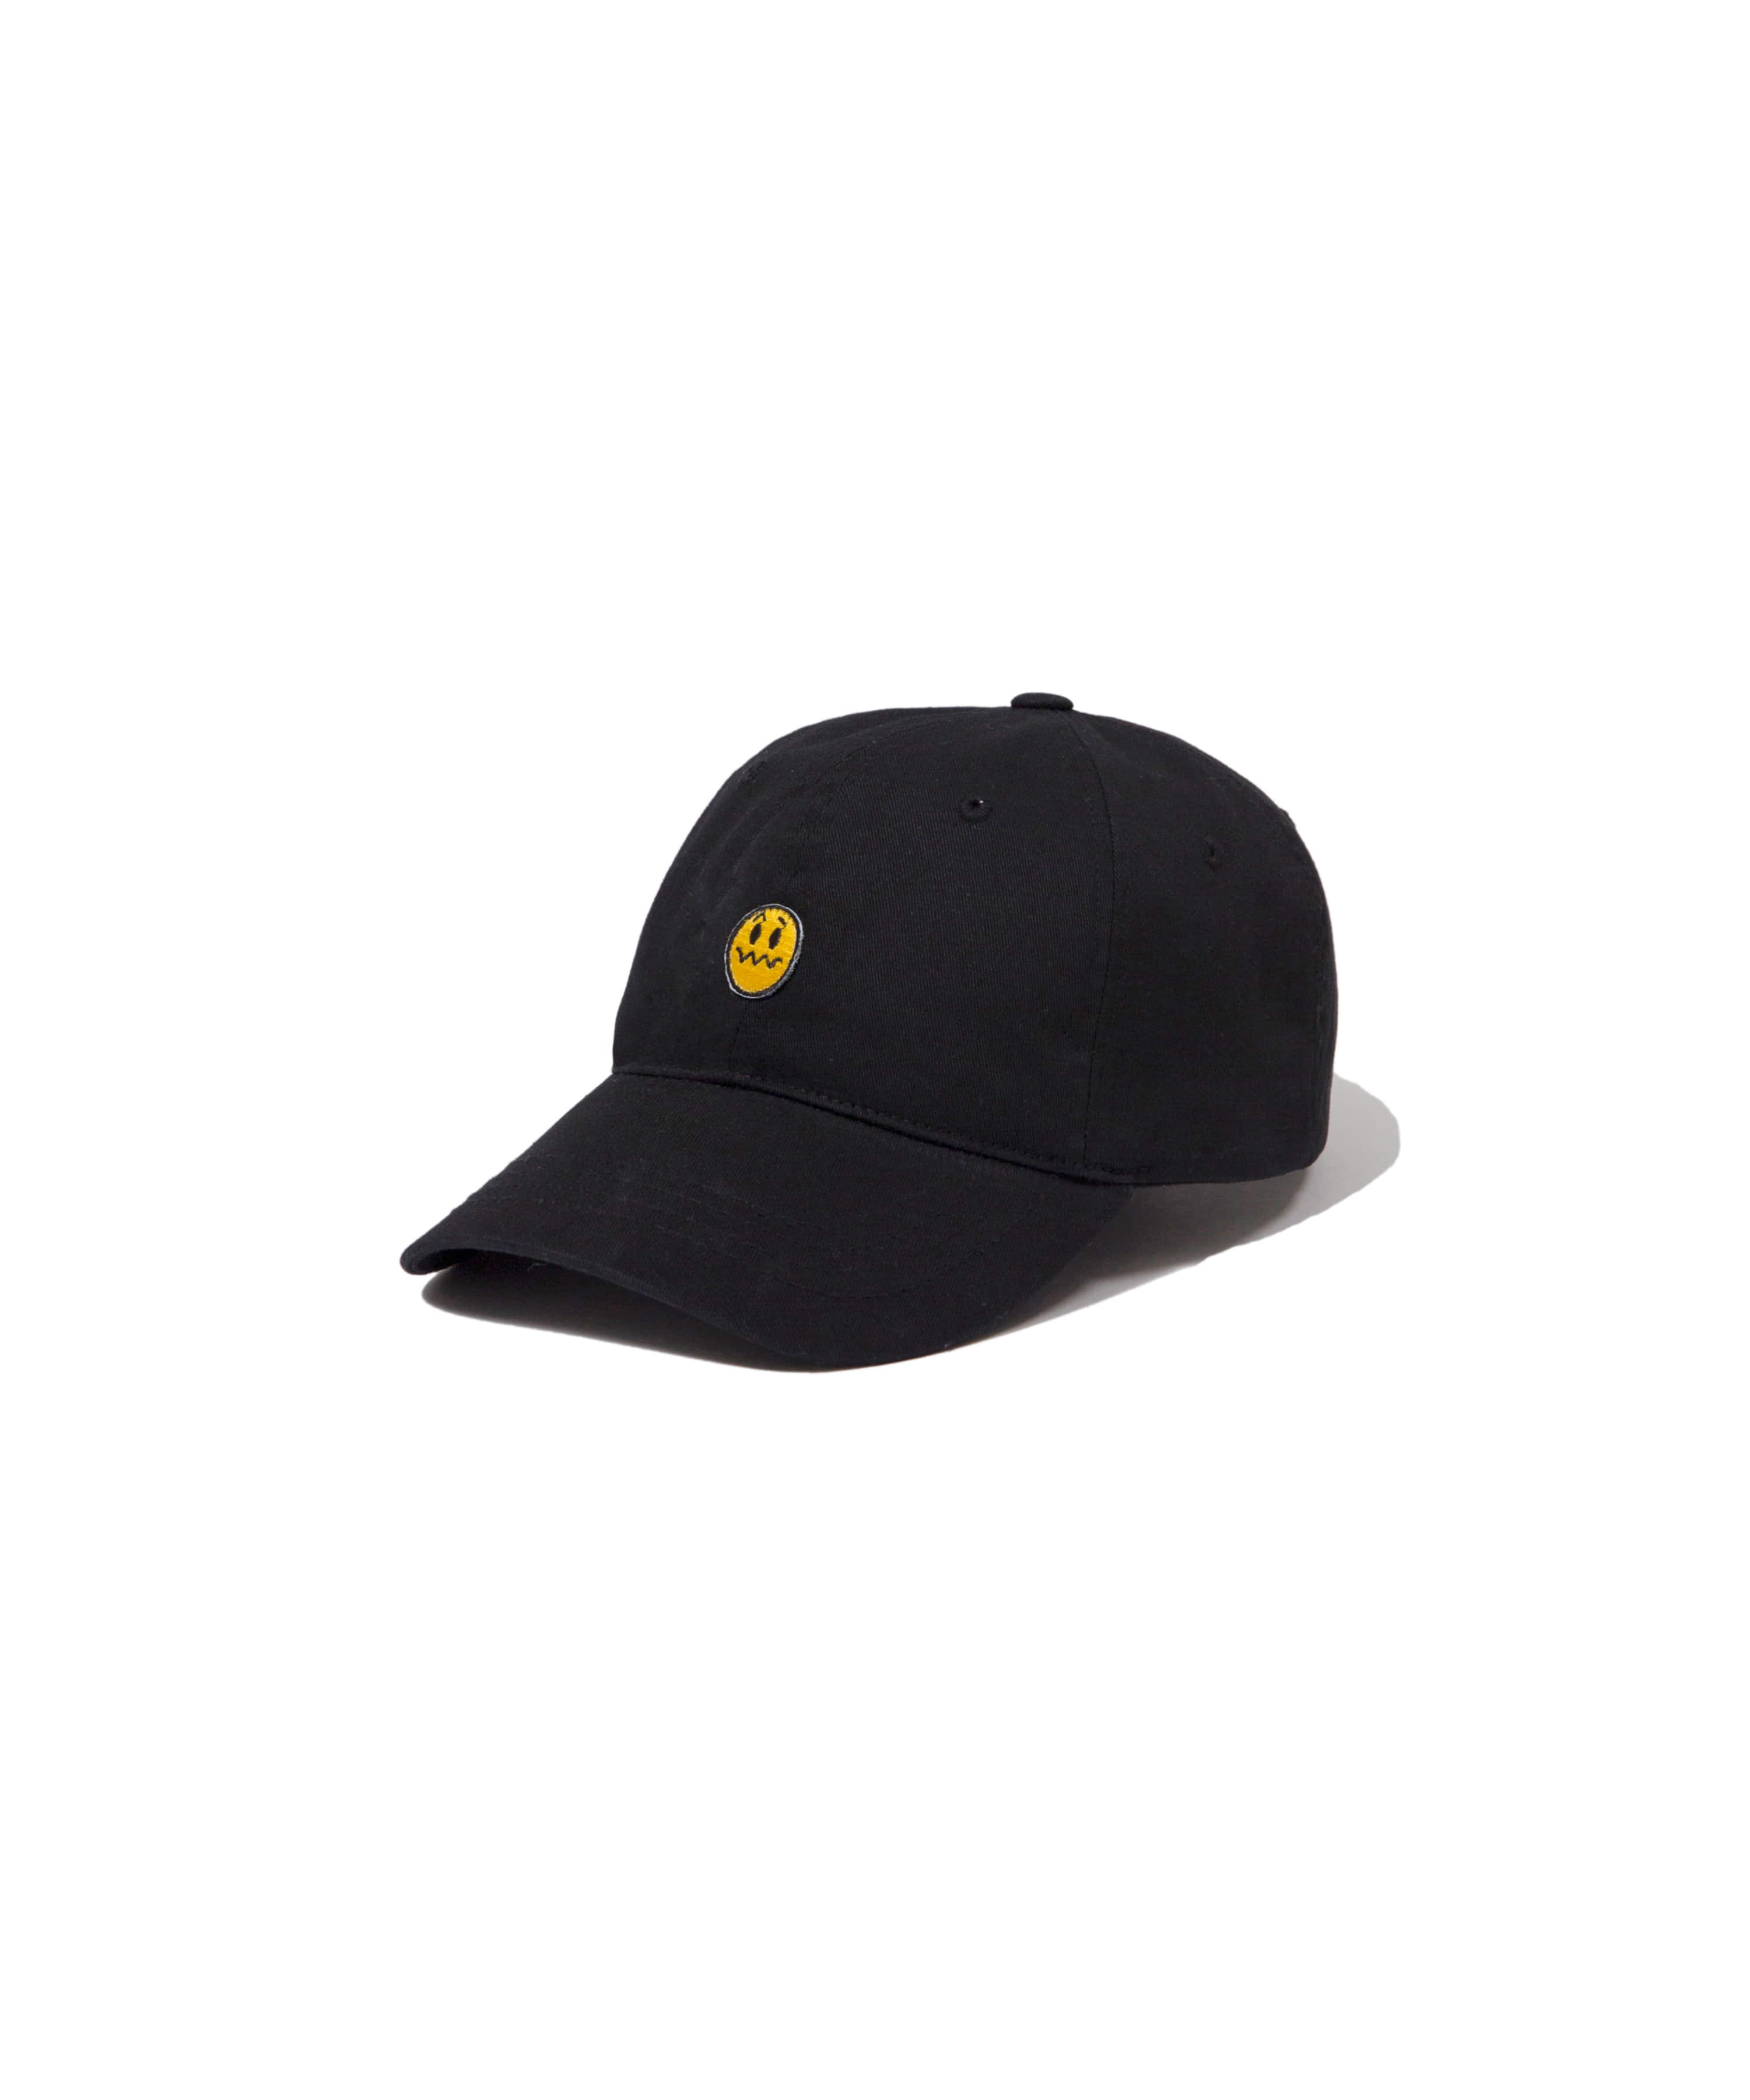 [추석특가50%] UNSMILE 6PANEL BALL CAP BLACK